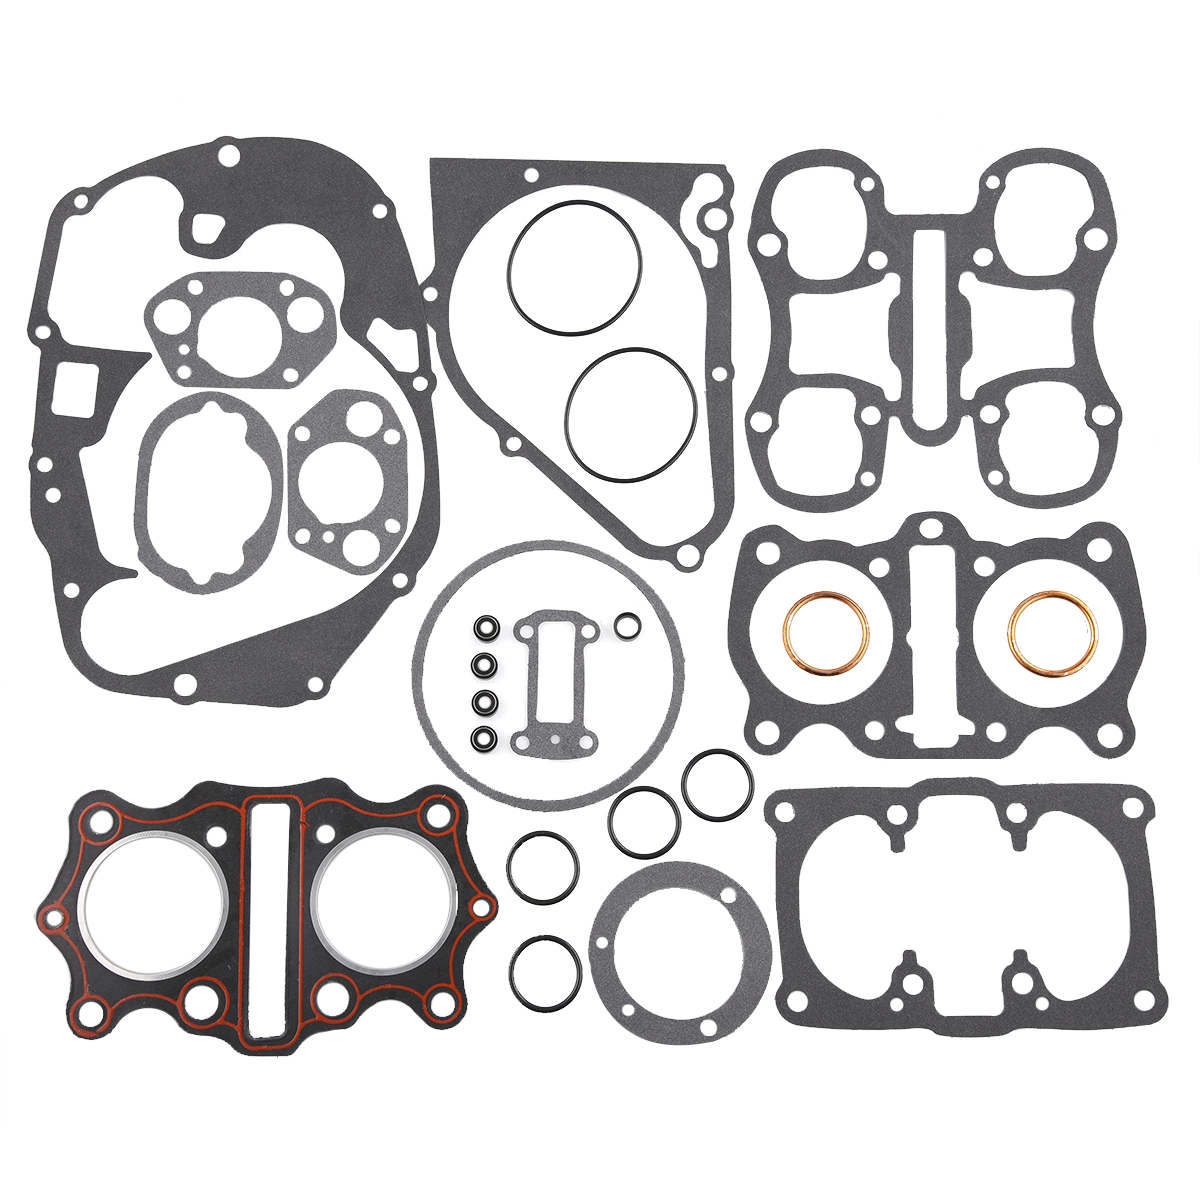 Complete Engine Gasket Set Kit for Honda CB350 CL350 SL350